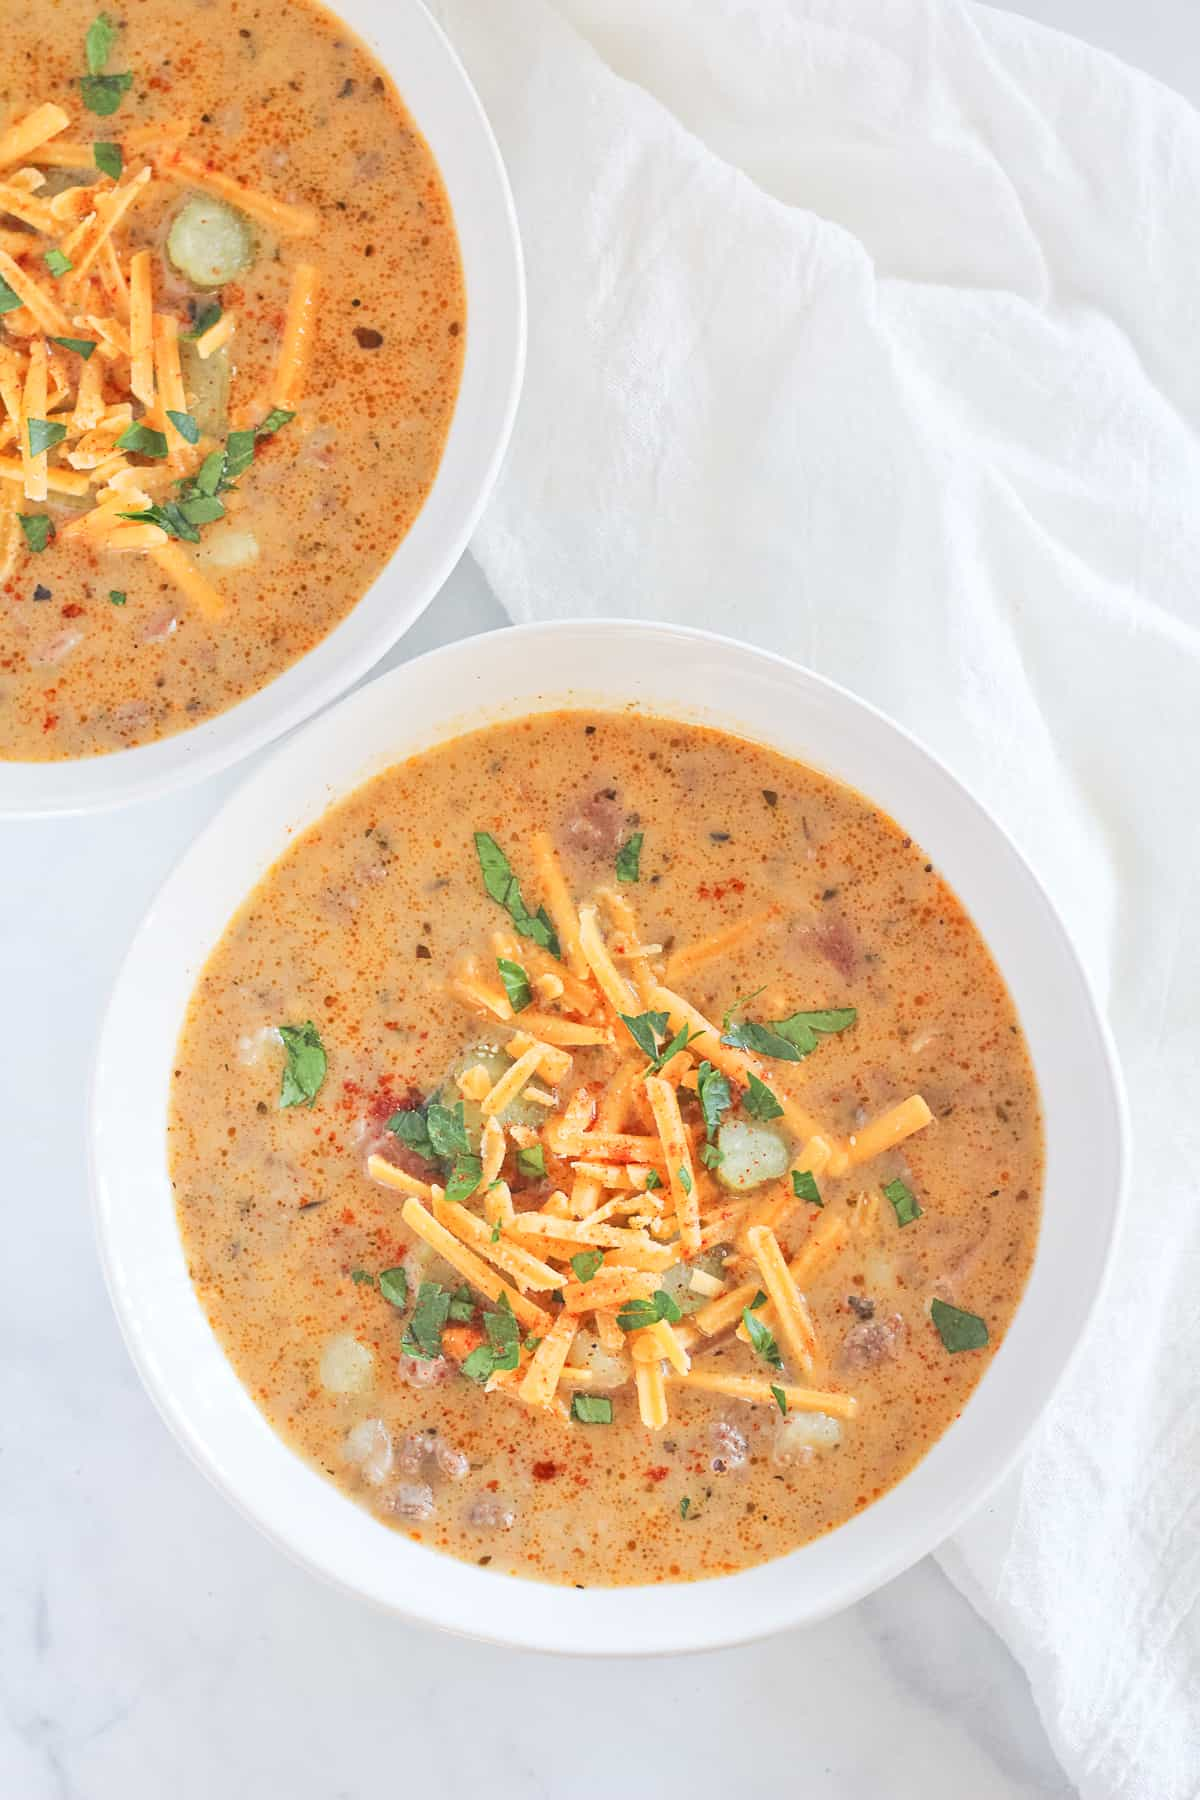 Cheeseburger soup in white bowls topping with cheese, pickles and smoked paprika.